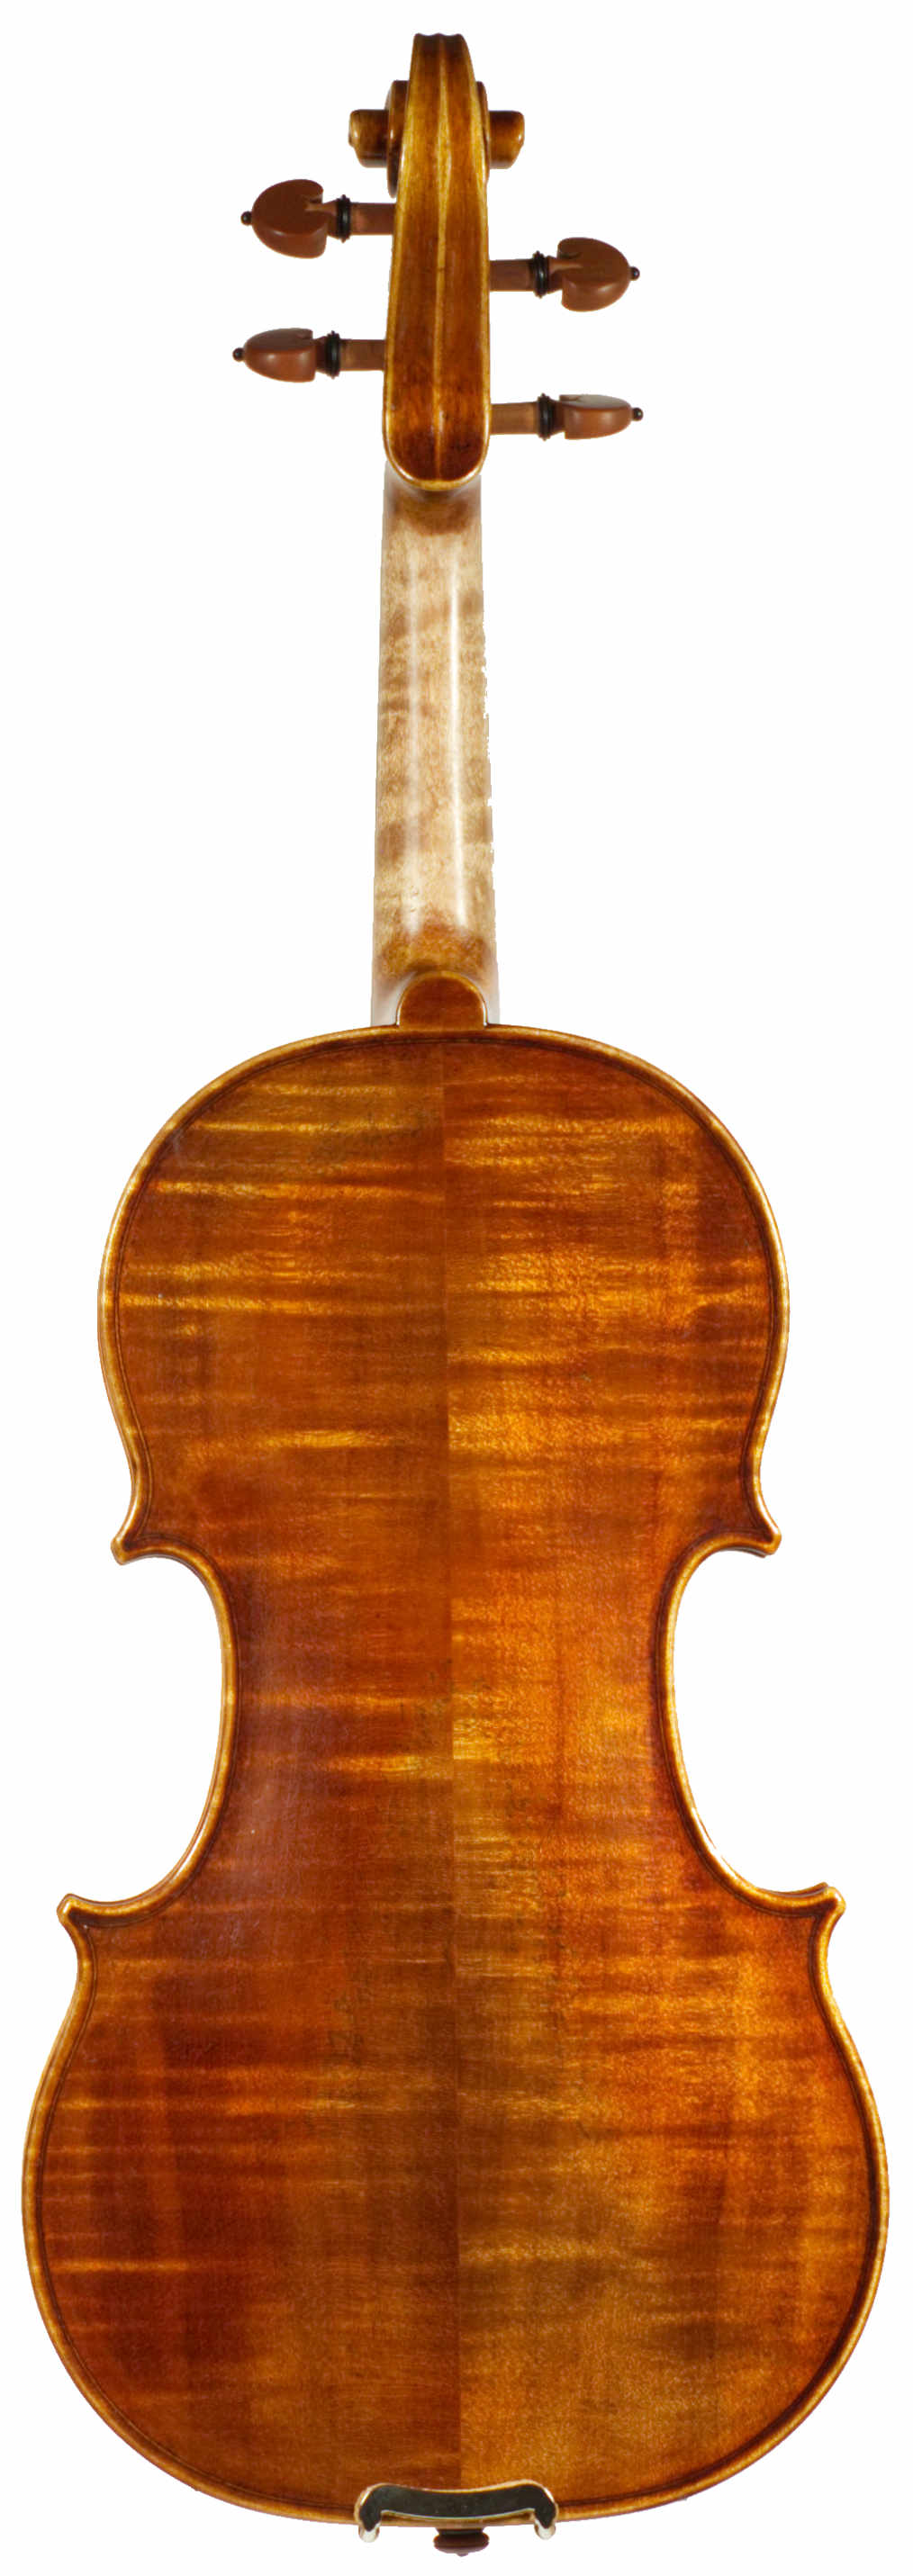 Amber Strings Moretti model violin